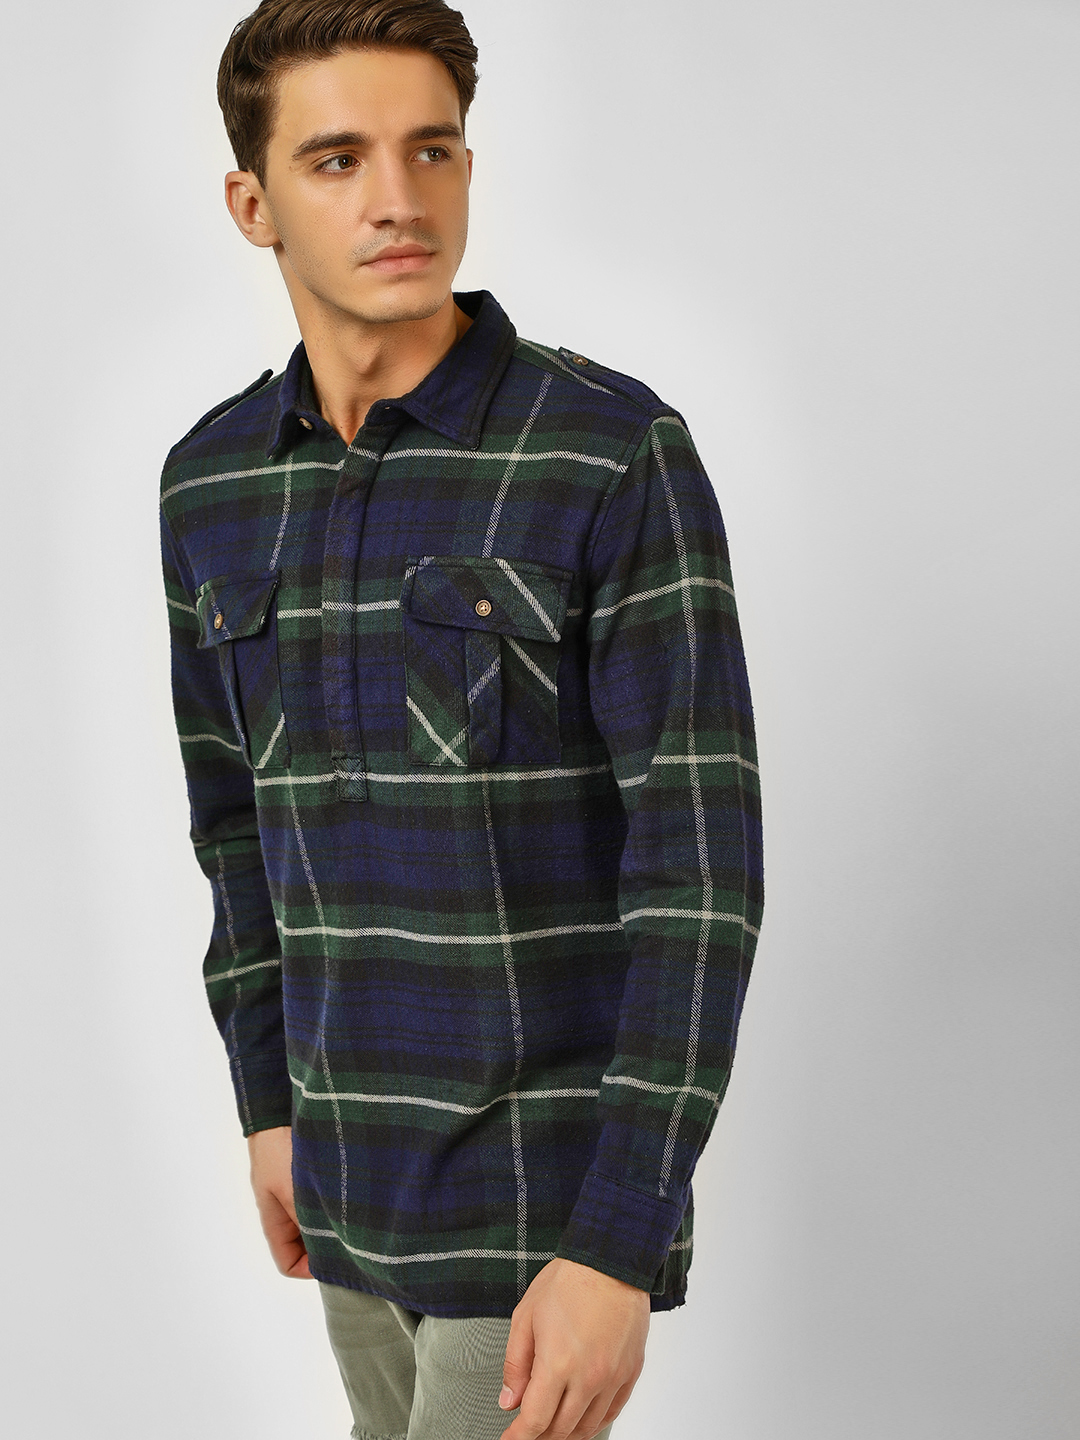 Blue Saint Multi Half Placket Checkered Shirt 1